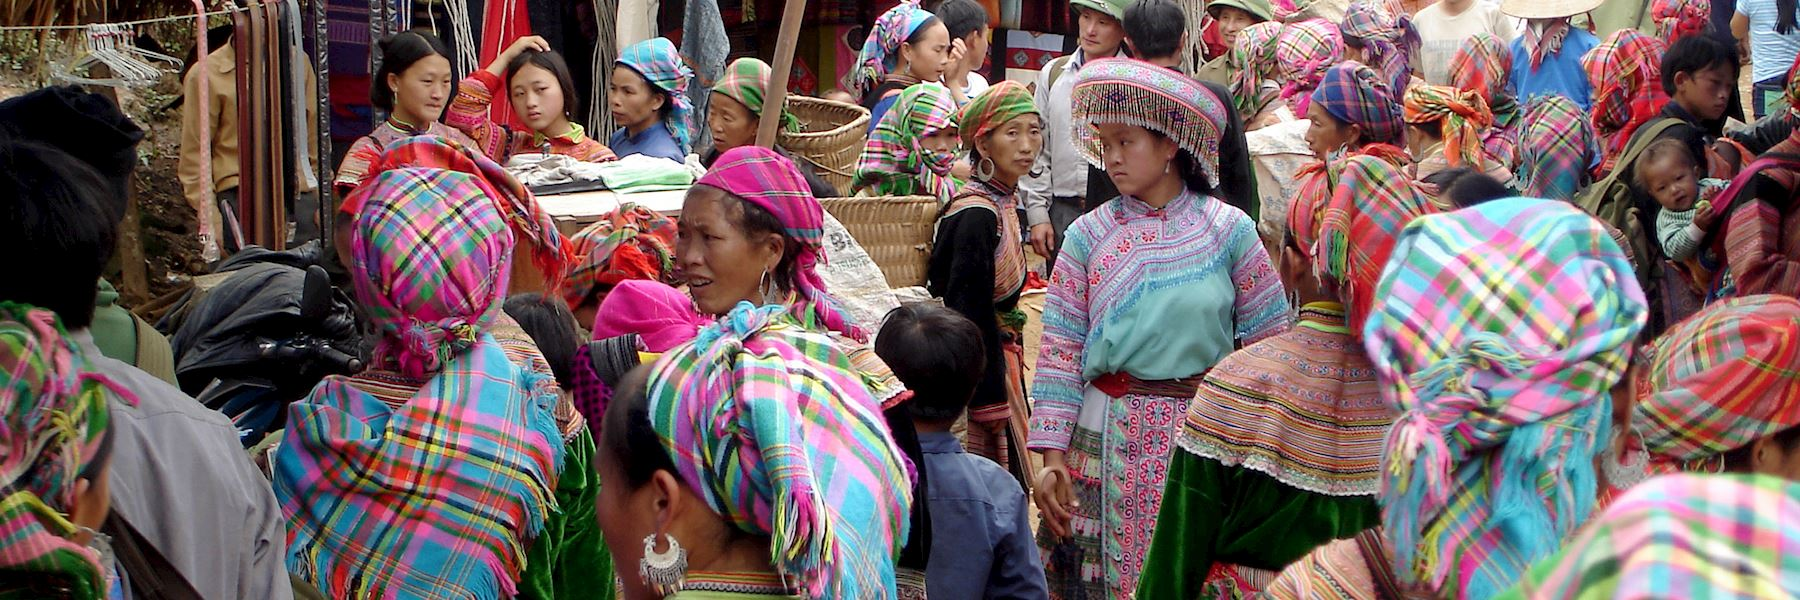 Visit Sapa & the Tonkinese Alps, Vietnam